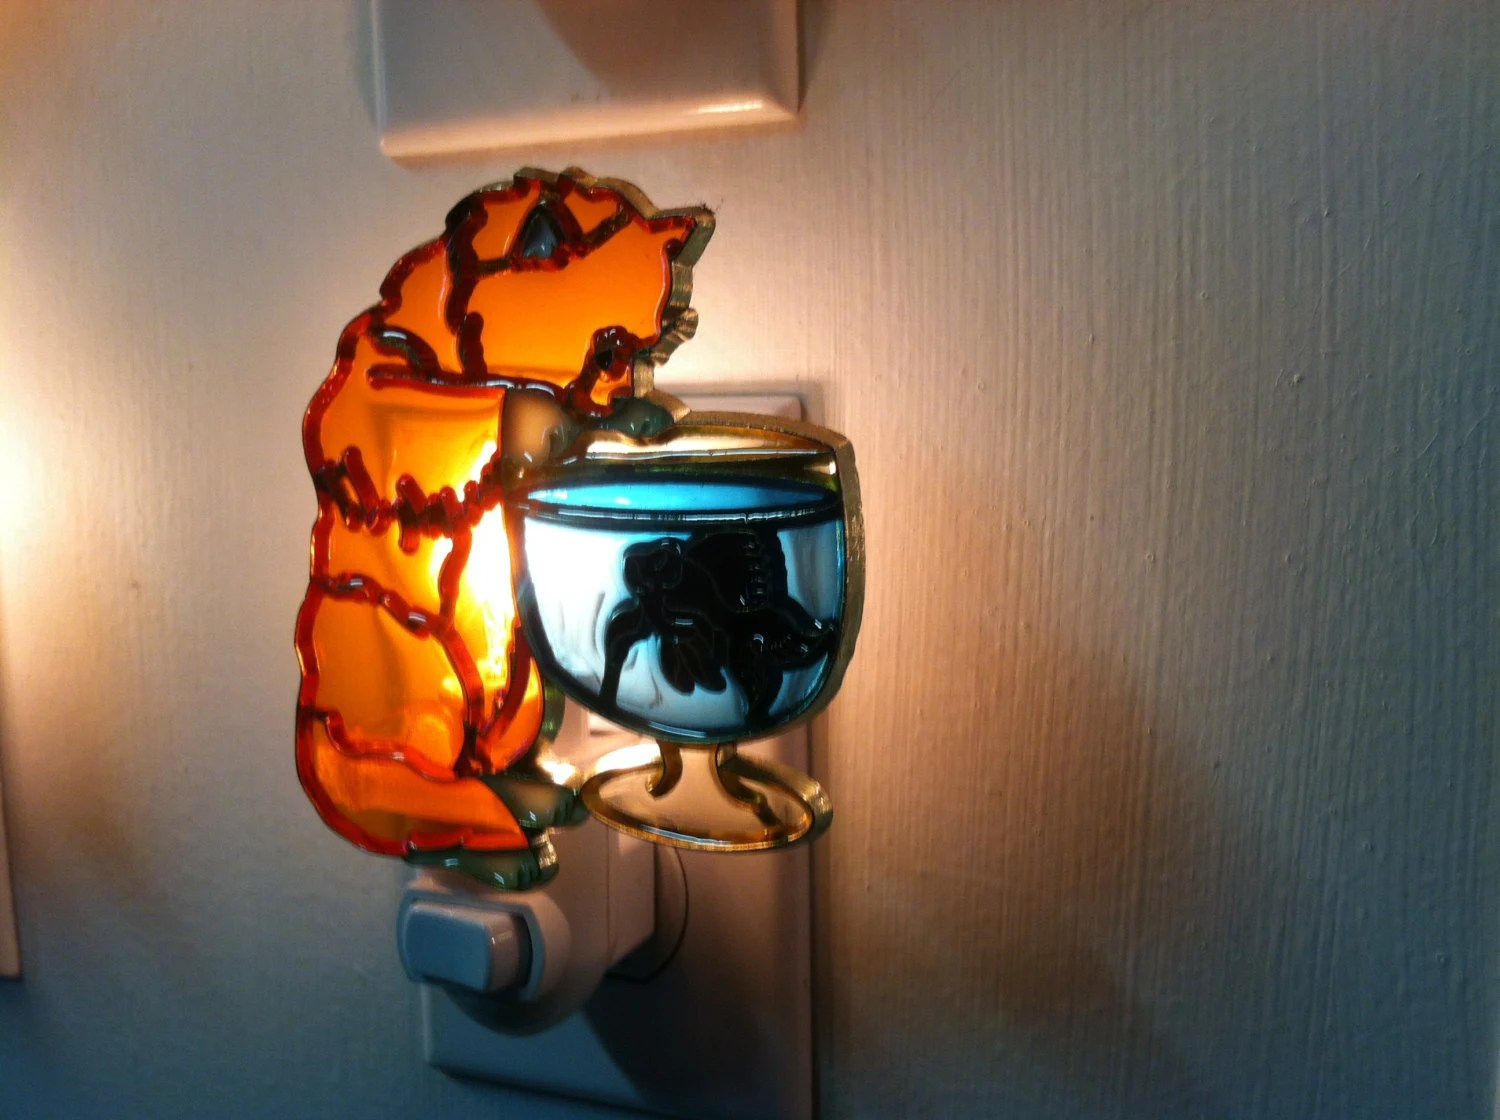 Cat Night Lights Cat With Fish Bowl Night Light With 4 Watt On Off Switch